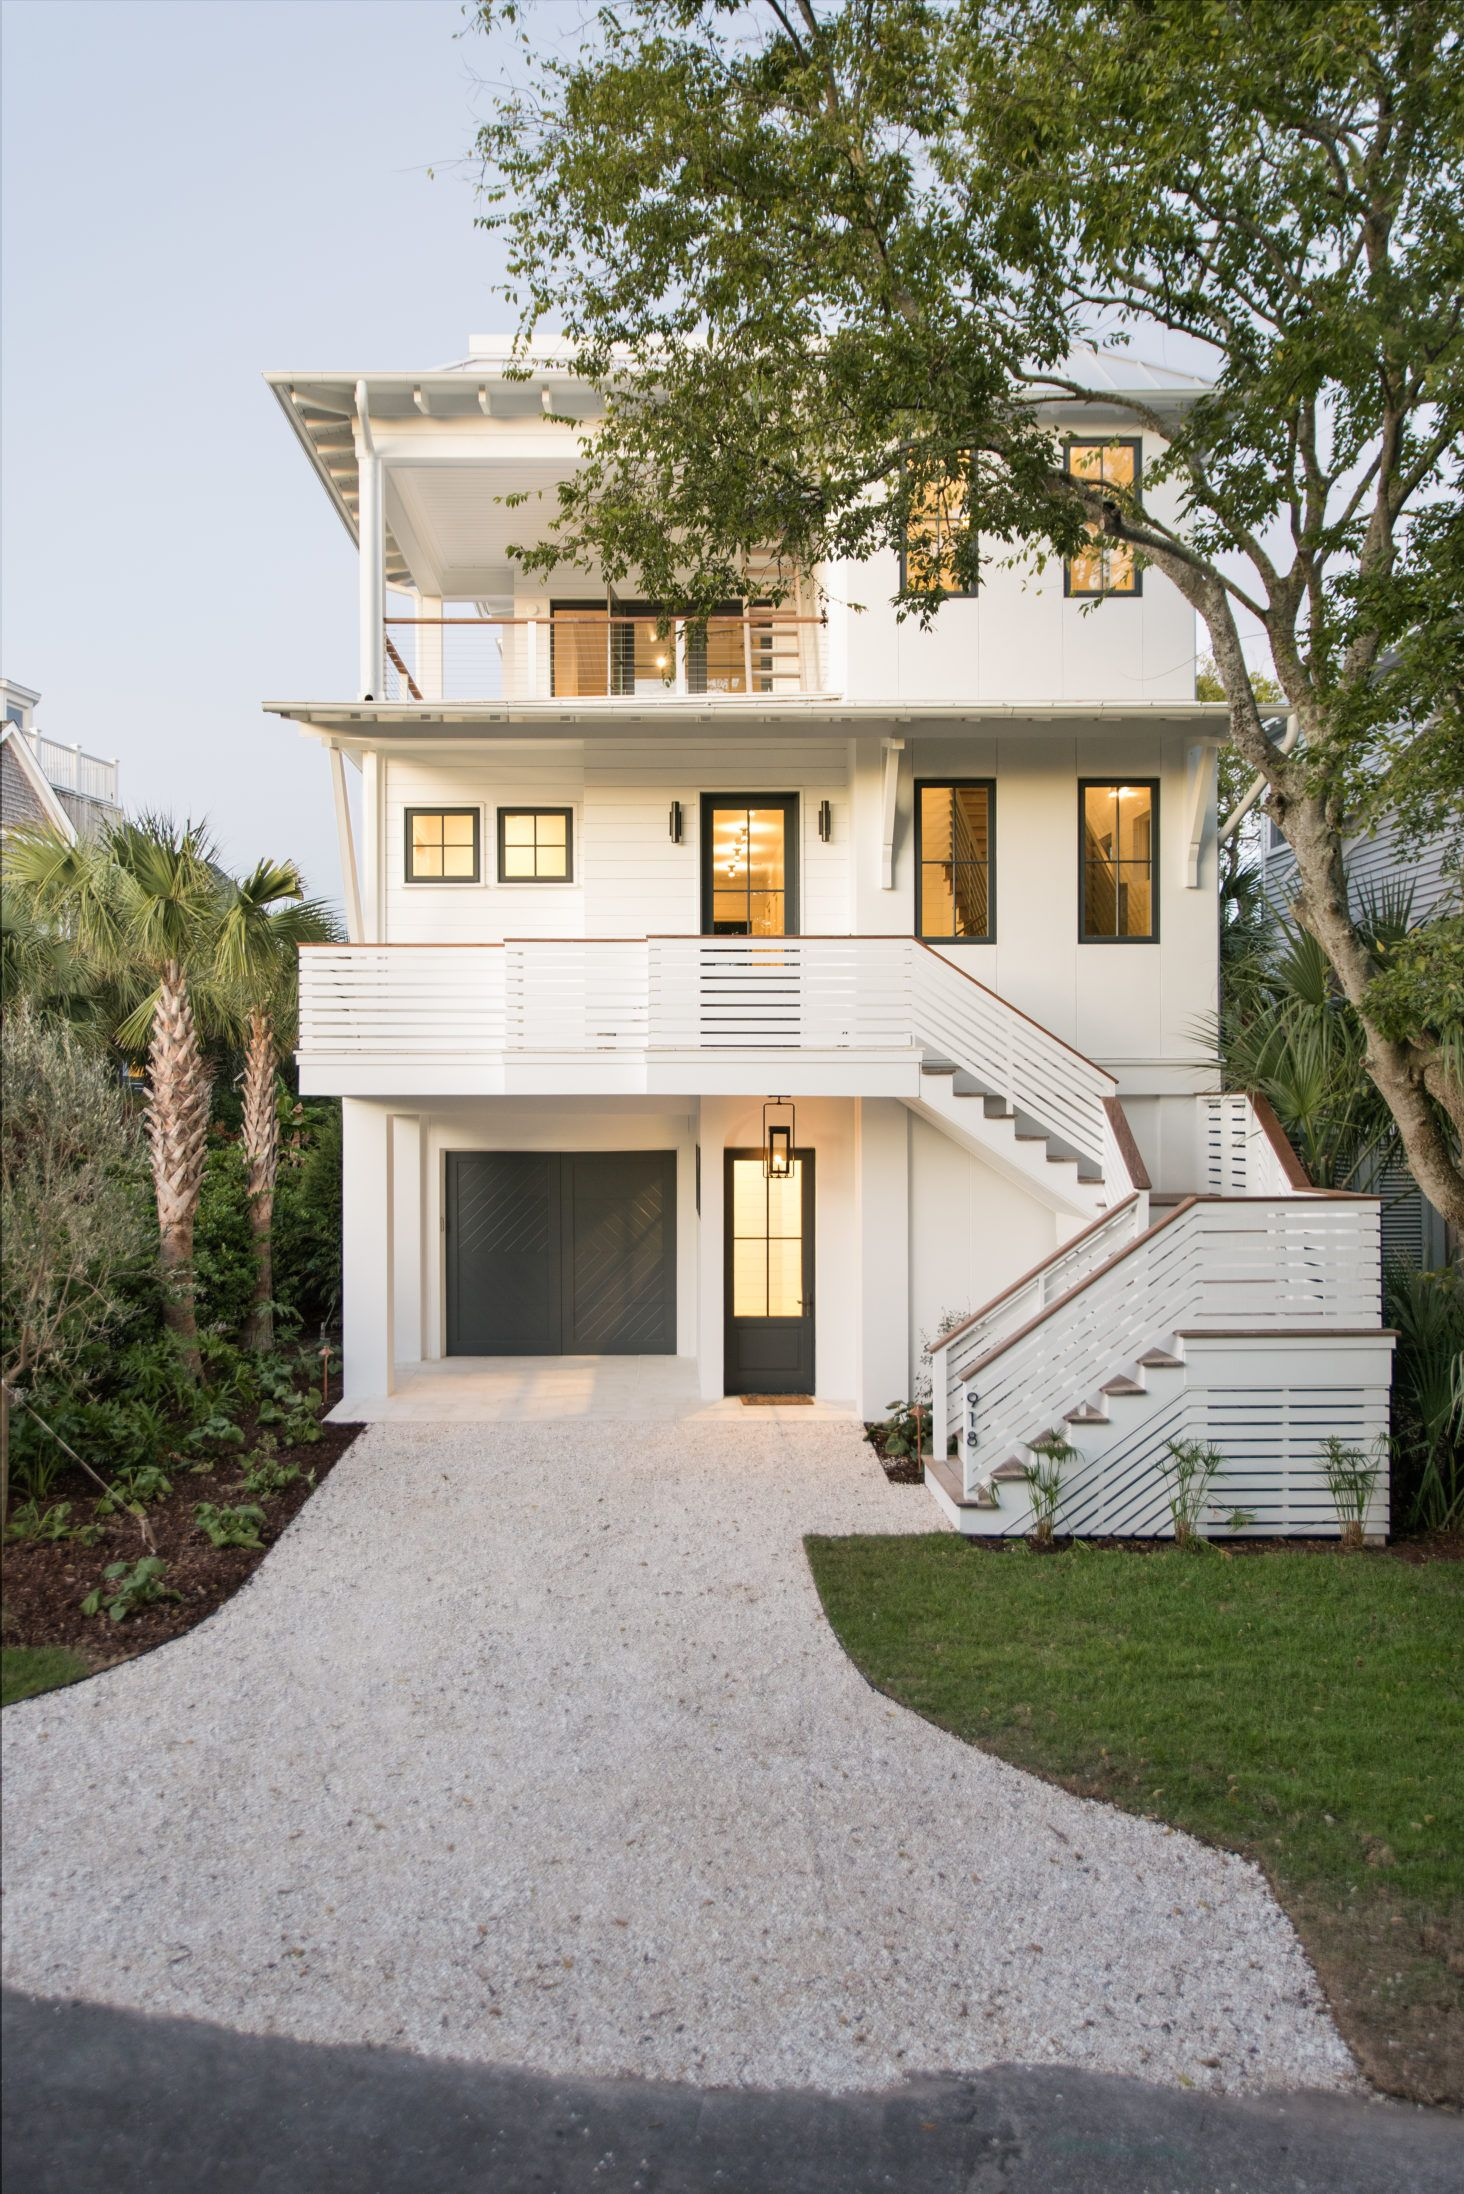 Beautiful 3 Storied White Home Exterior With Black Doors And Windows Barrow Building Group House Designs Exterior House With Balcony Beach House Exterior